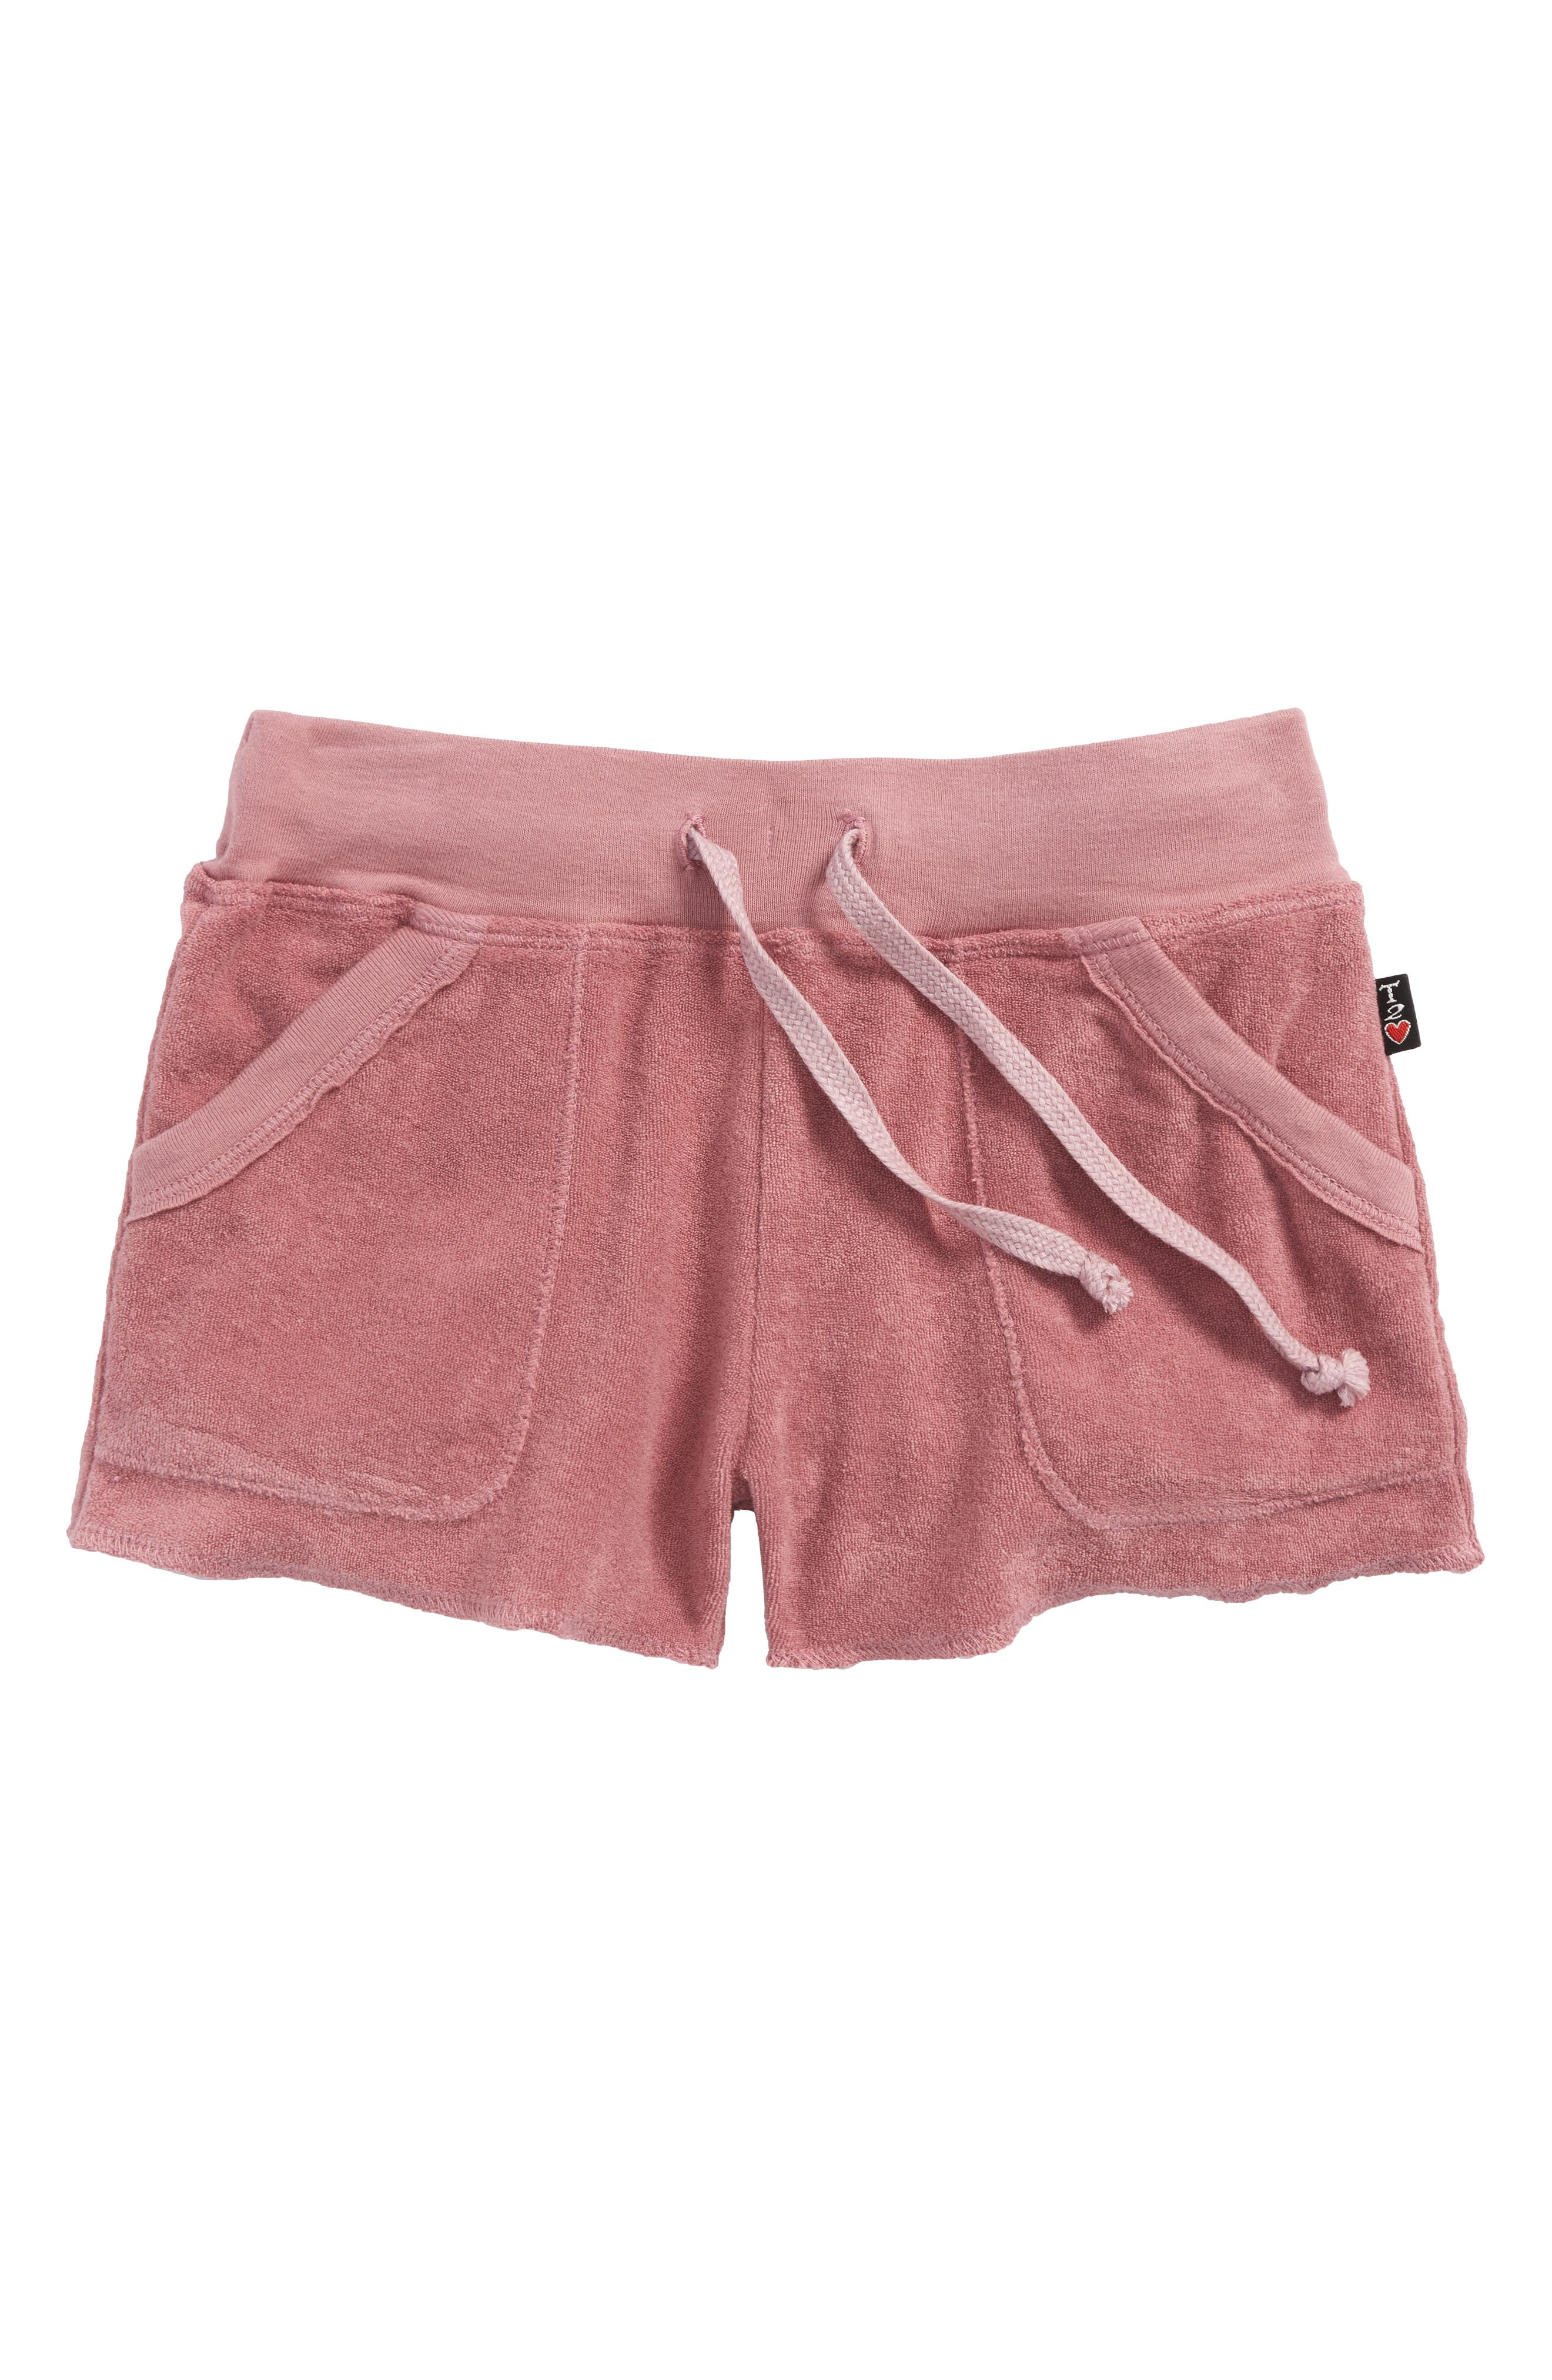 T2Love French Terry Shorts,                         Main,                         color, 600